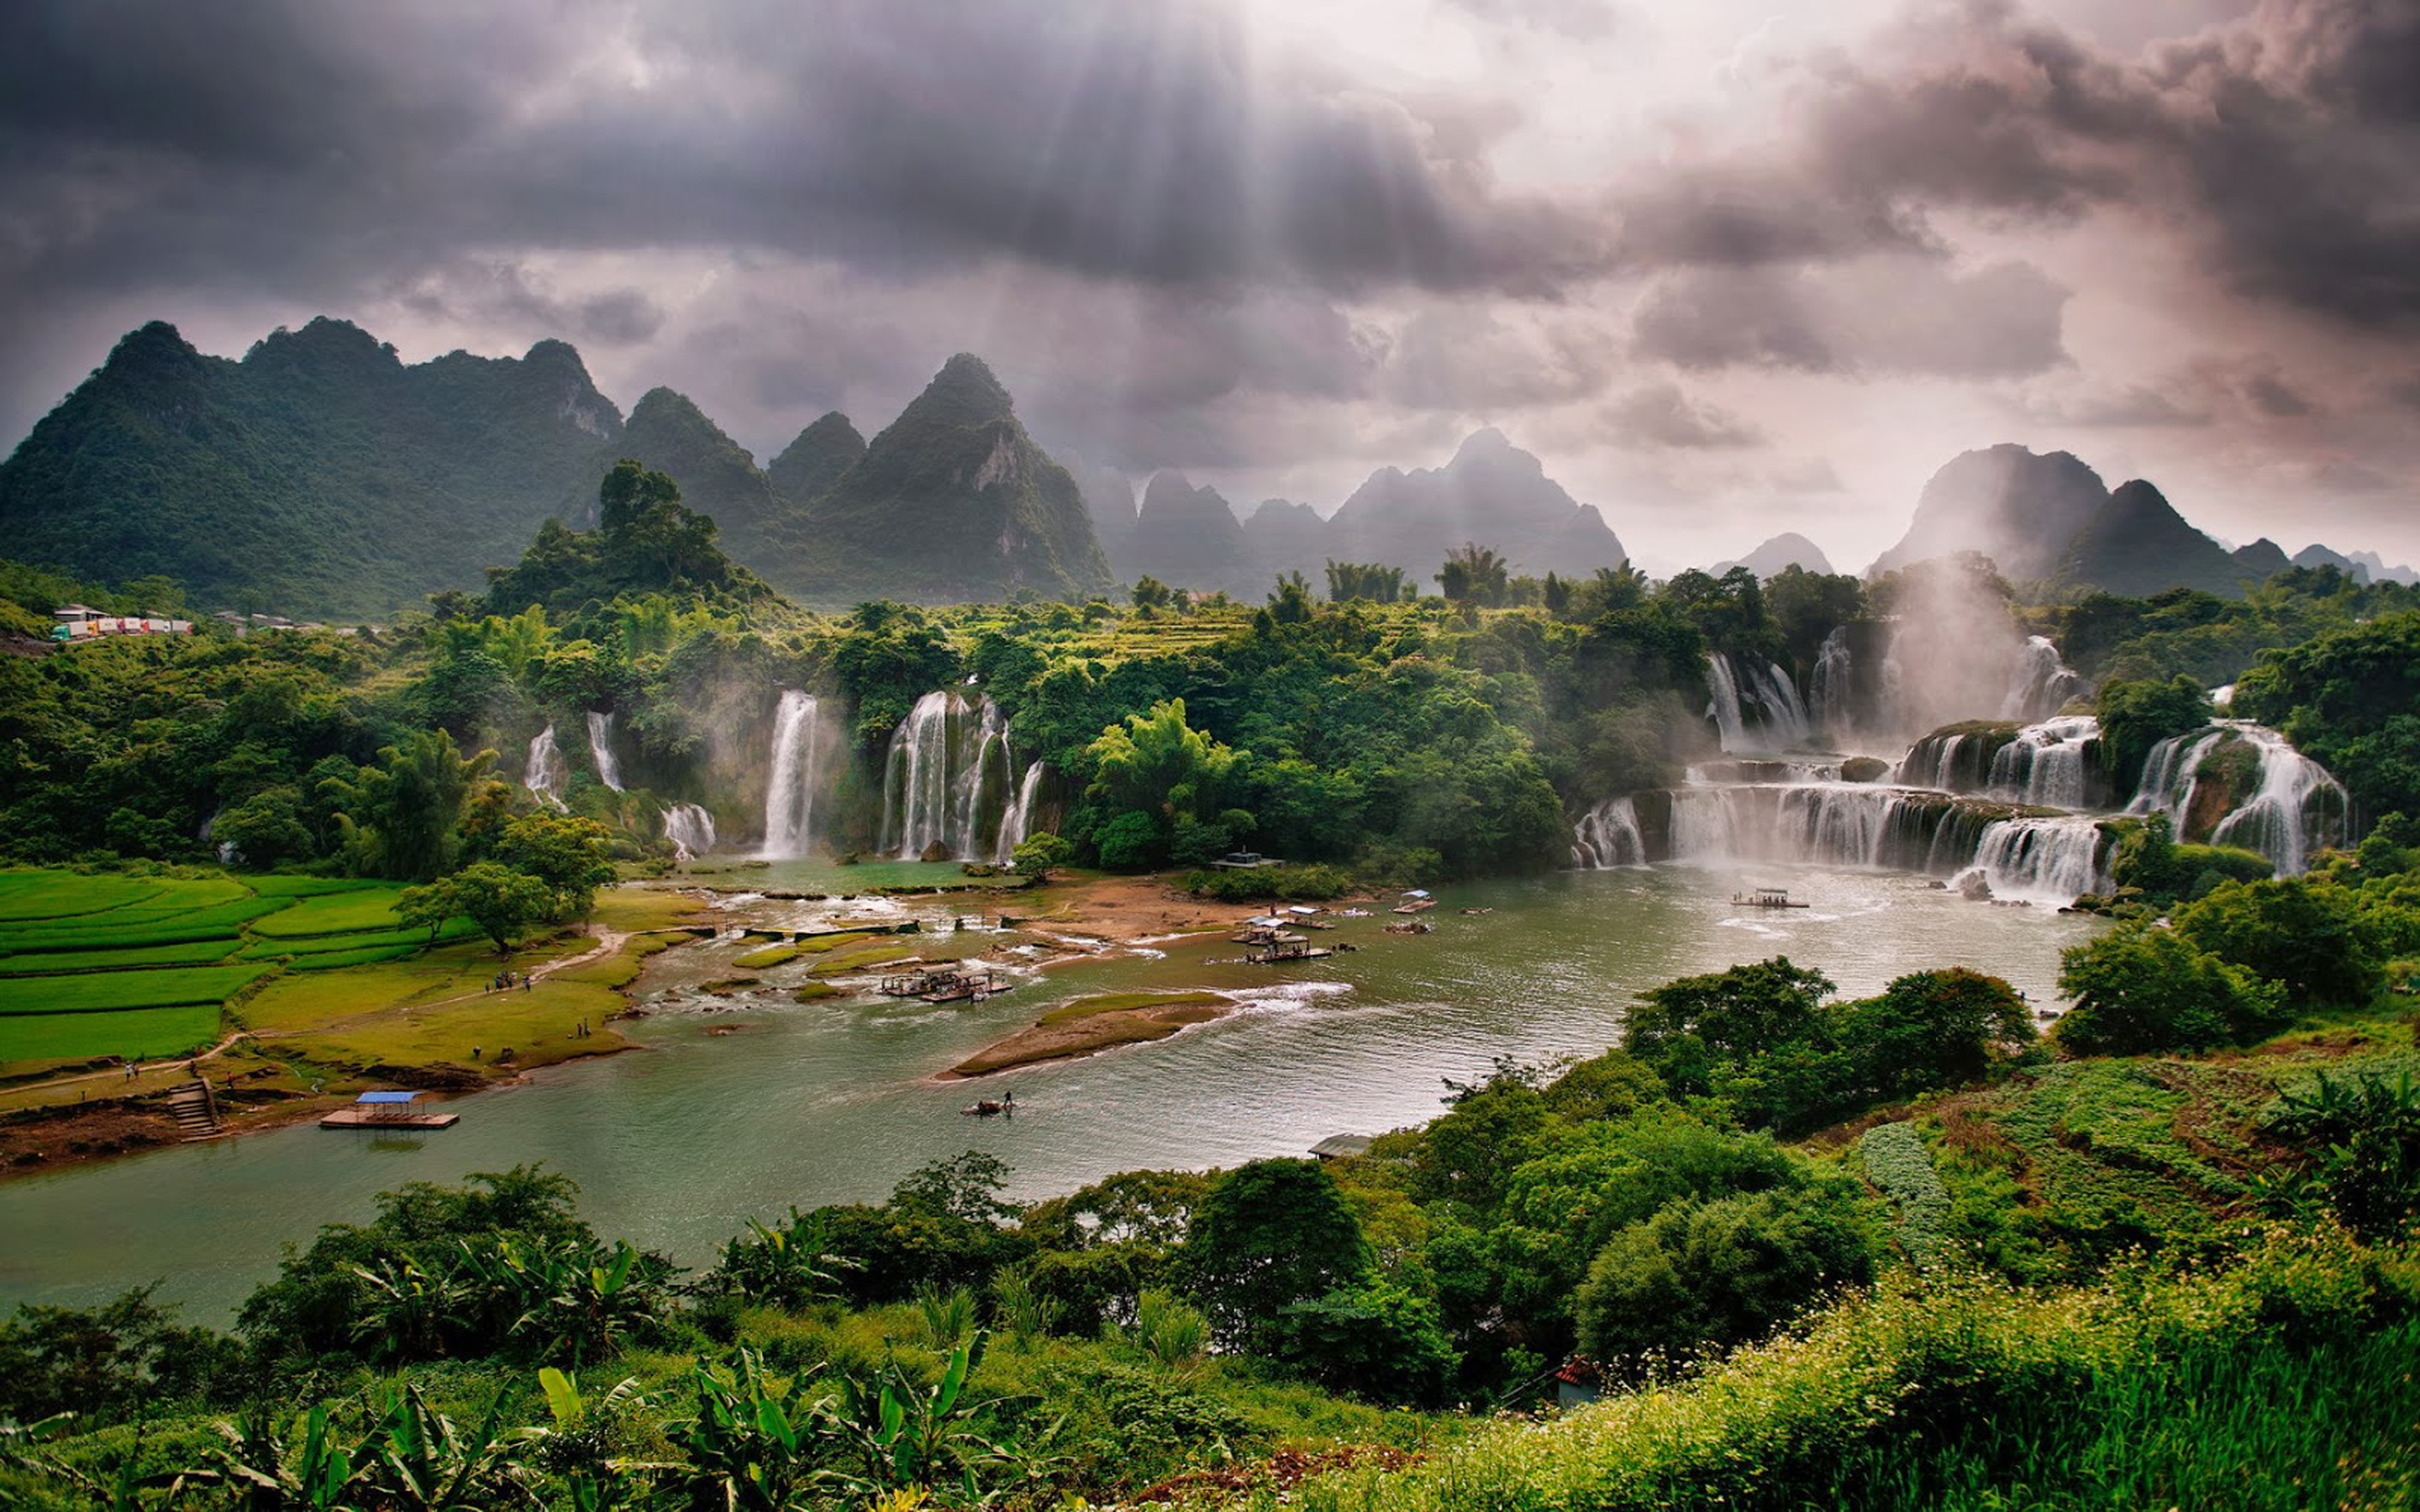 4k Wallpapers For Pc Cars Detian Waterfall Daxin County Guangxi China Desktop